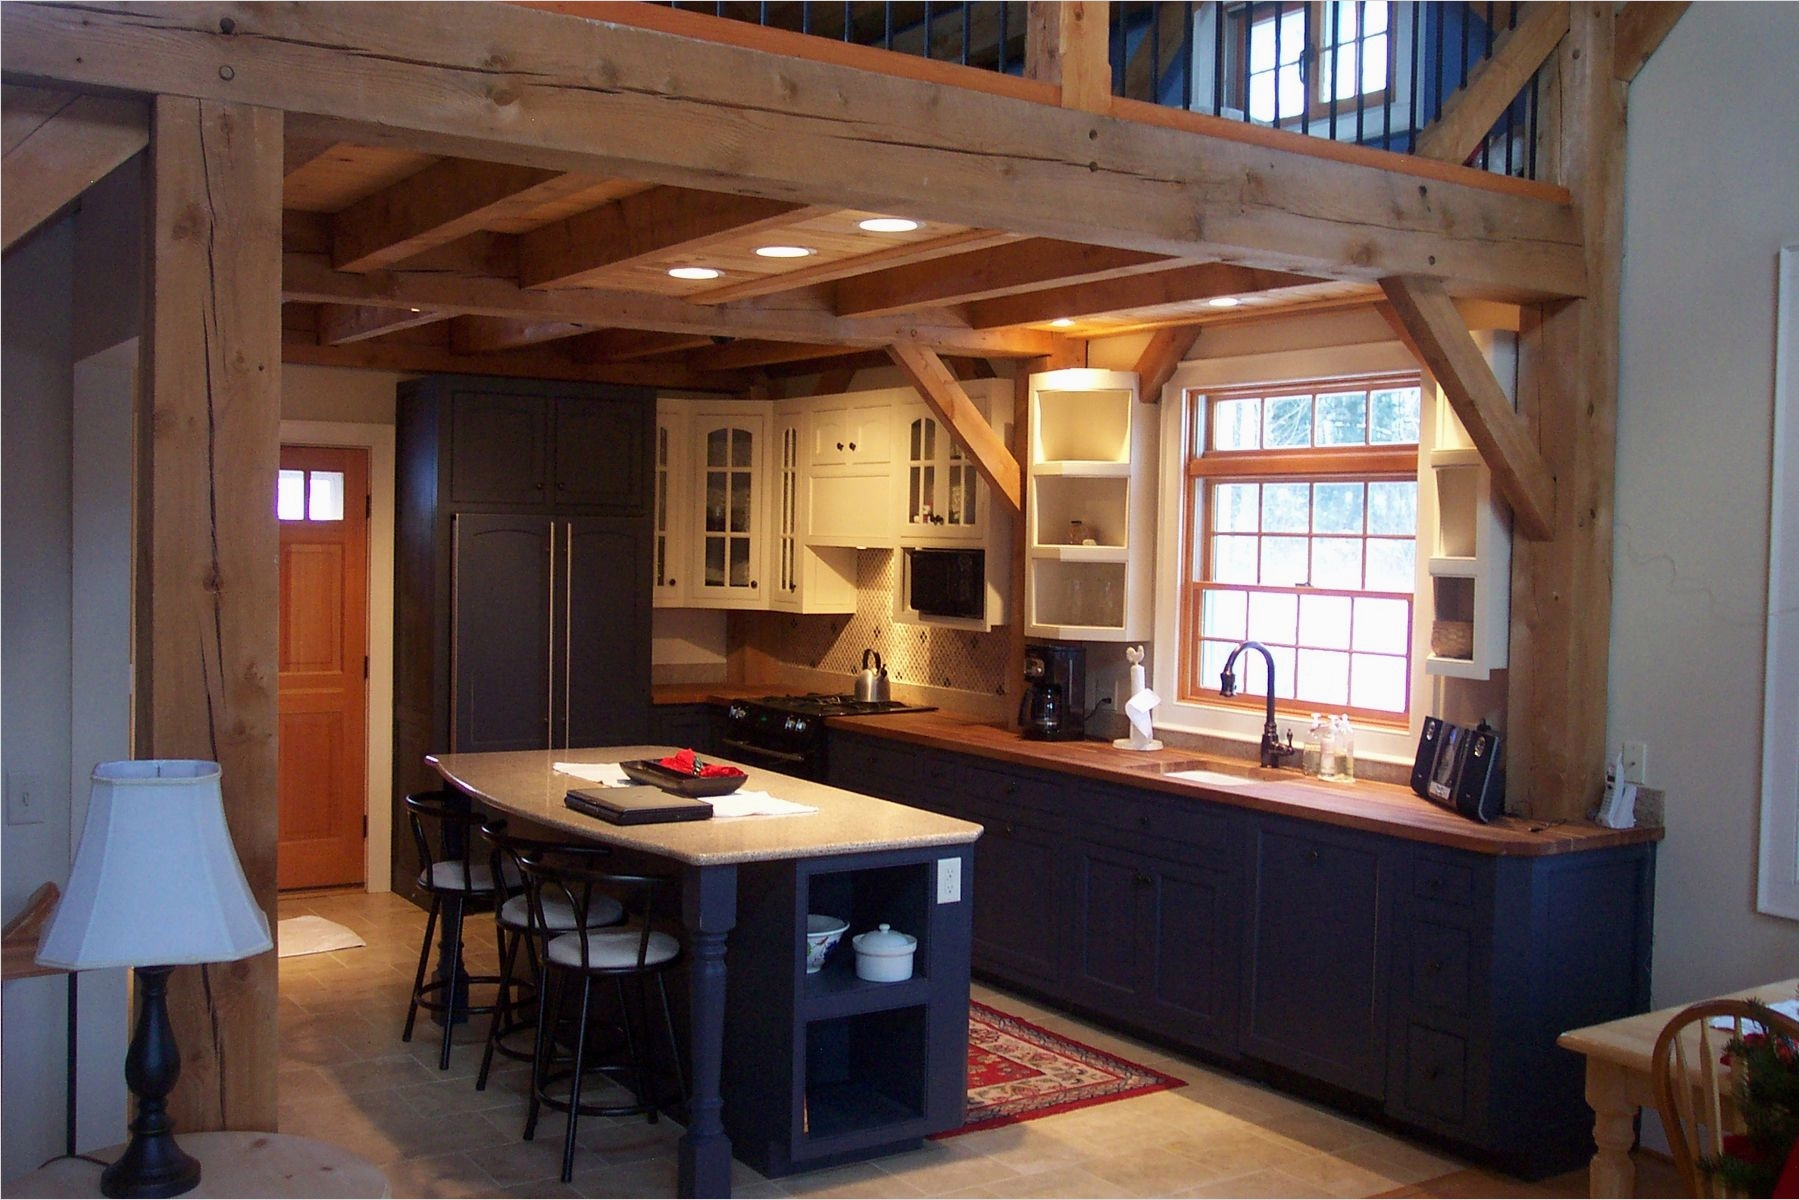 43 Stunning Minimalist Farmhouse Kitchen Cabinets 76 Minimalist Rustic Kitchen Stolarnia Club Restaurant Wooden Colonial Style Design with Exposed 3